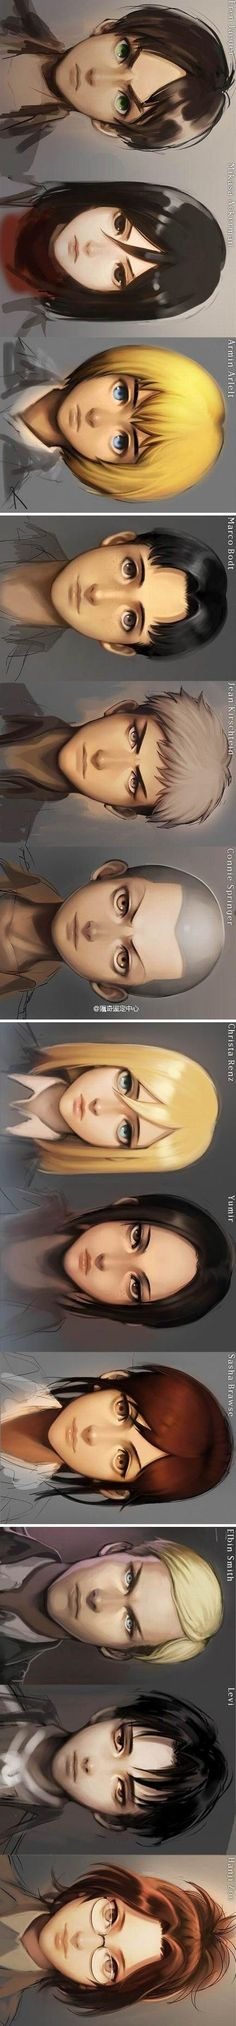 Characters Shingeki No Kyojin Pics Anime https://pinterest.com/dark20 Wallpers Epics Imagen IMG Cosplay HD Pixiv Deviantart Tutorial Digital Drawing Book Gallery Moe Beautiful Cute Landscapes Nice Photos Like IPhone Lockscreen Comics Cartoon By Fan https://pinterest.com/phonepicshare/ Ecchi Art Body Hentai Manga Character Hot Butt Cartoon Girls Boy Nice Аниме Download http://ouo.io/Disfdk Top Manga Personaje Series Of All Time IMG Videos Best Top 10 Moments Recommendations Concetps Art